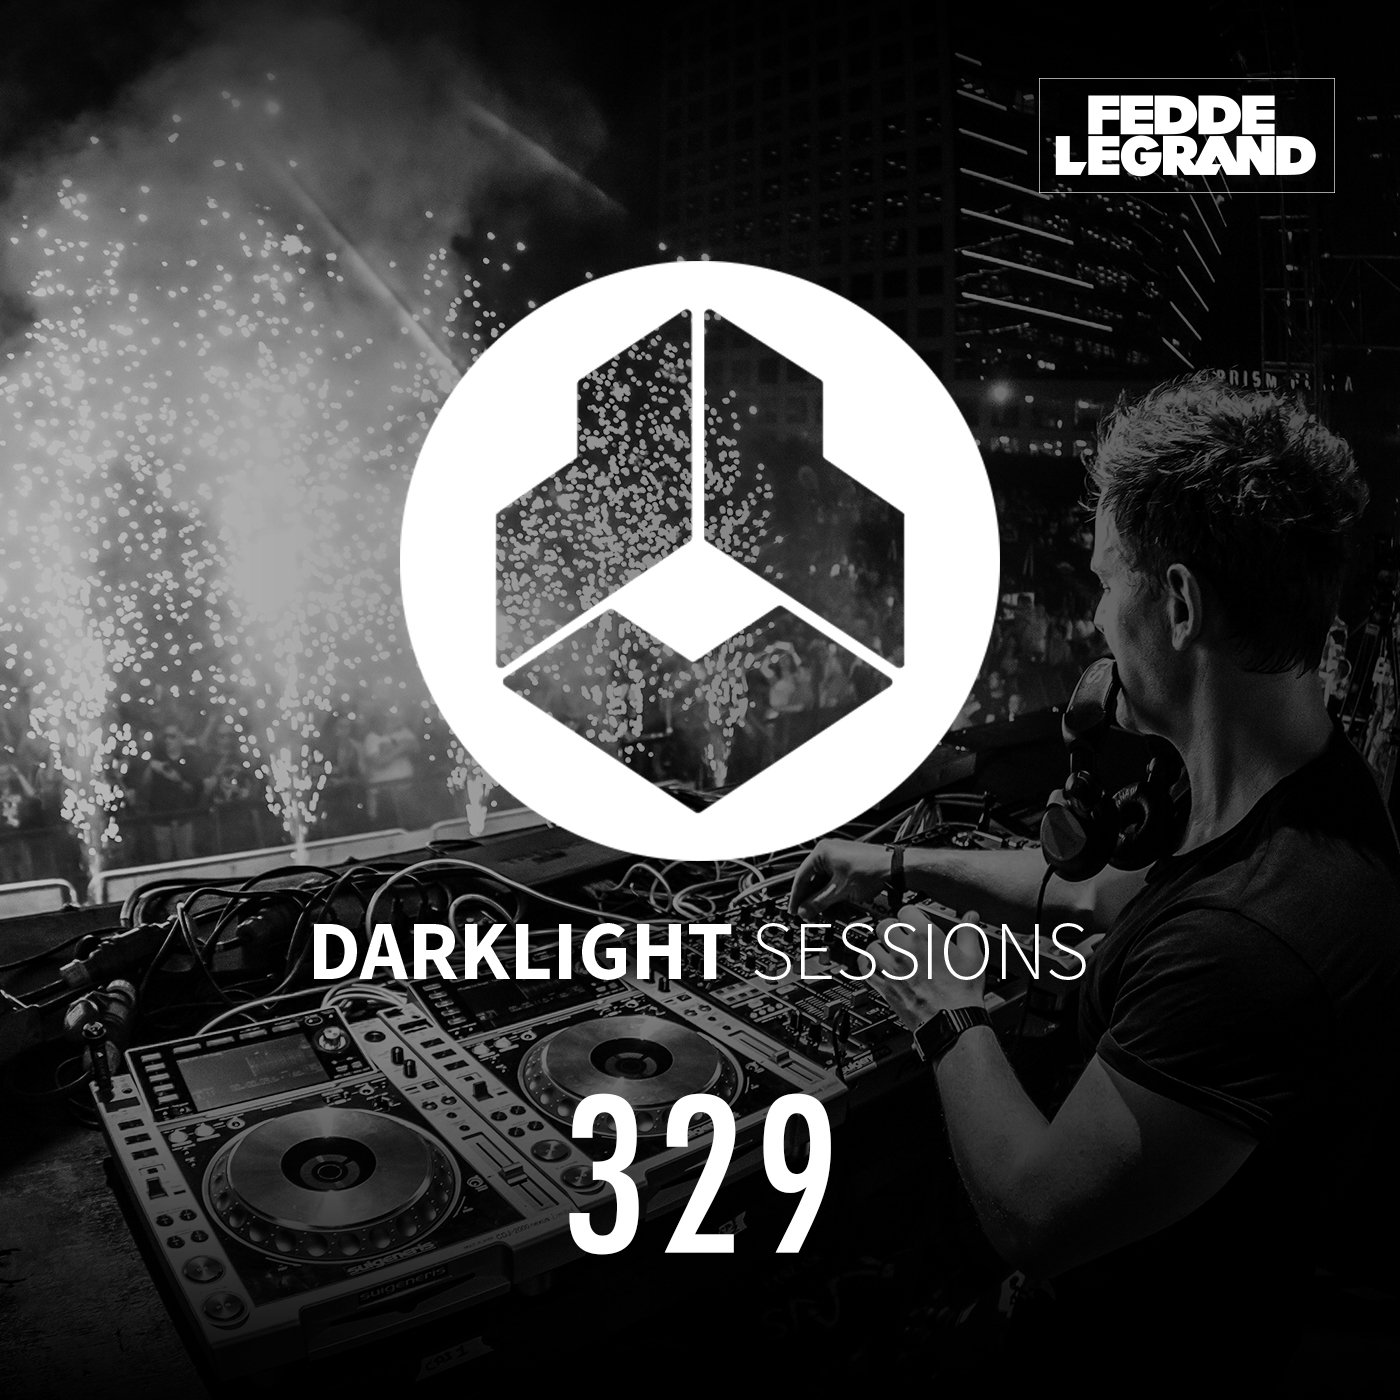 Darklight Sessions 329